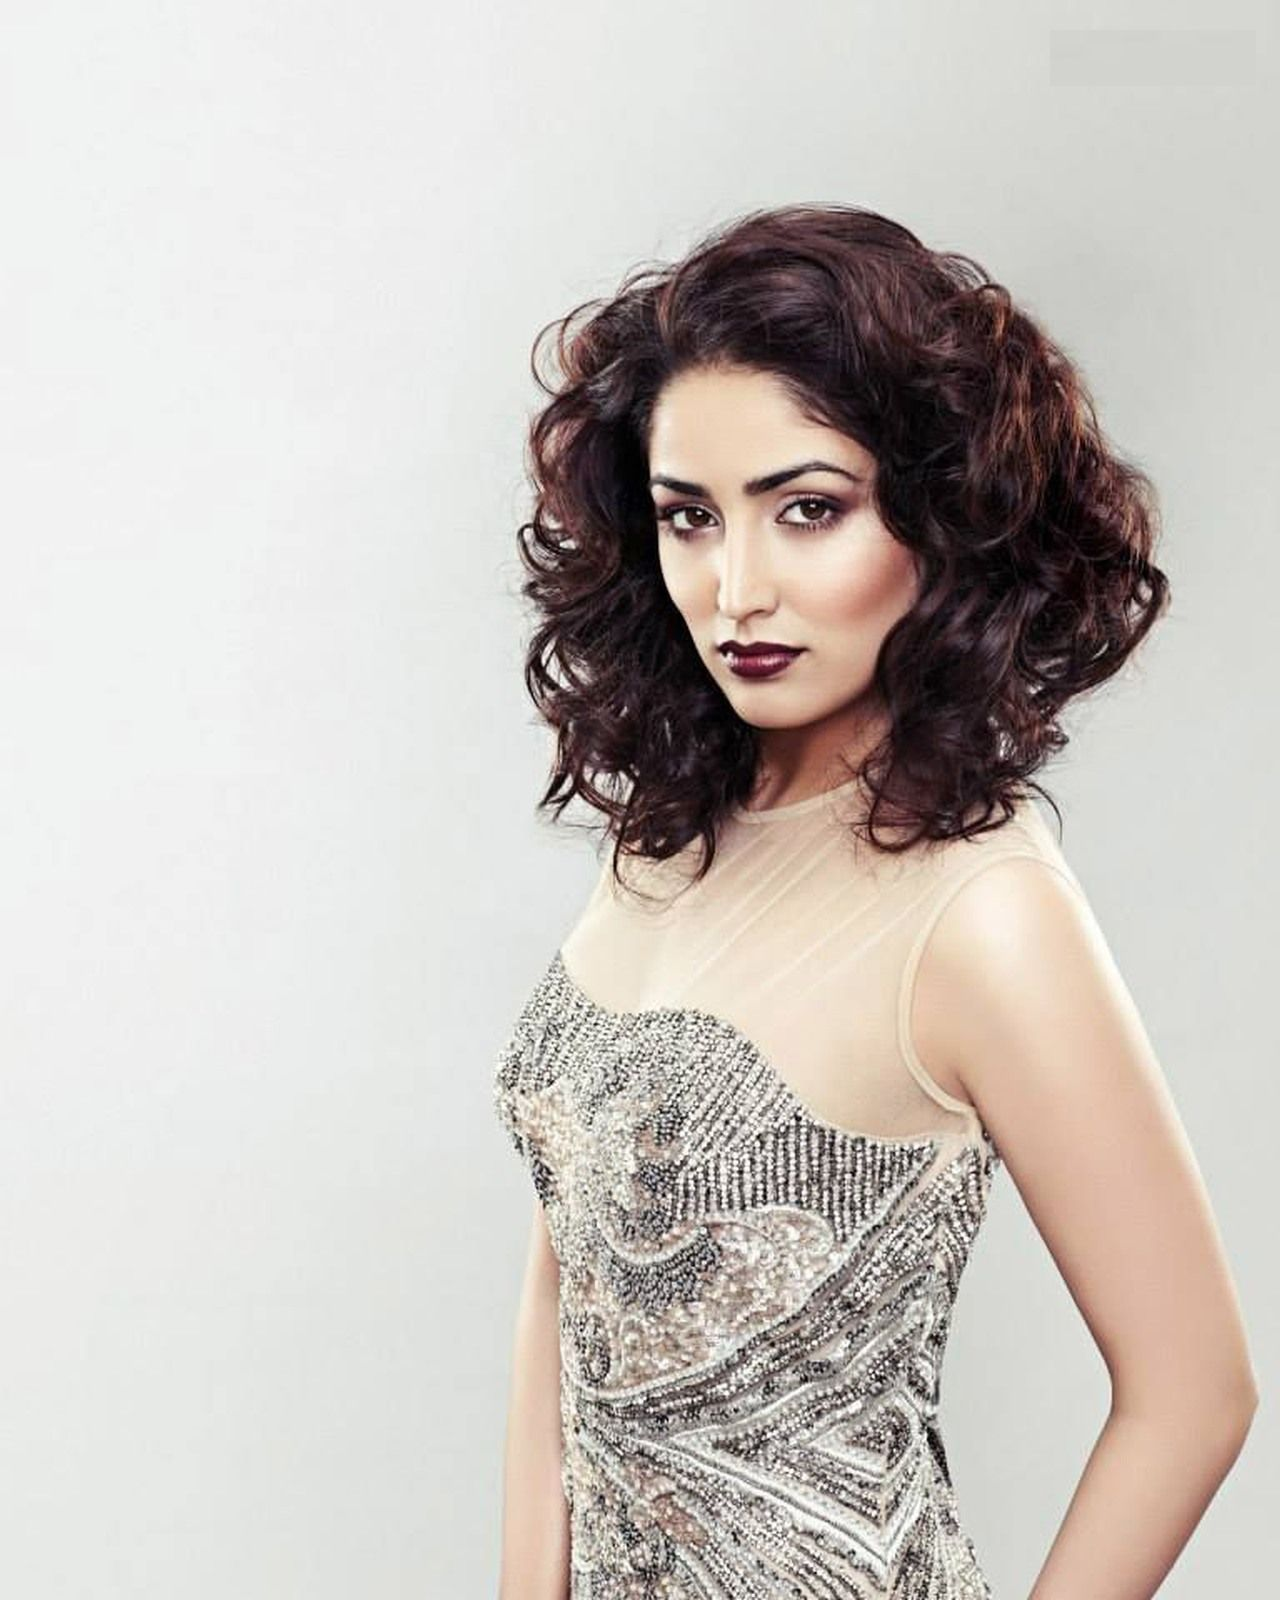 Yami Gautam Photo Shoot for Femina Magazine Photo Gallery